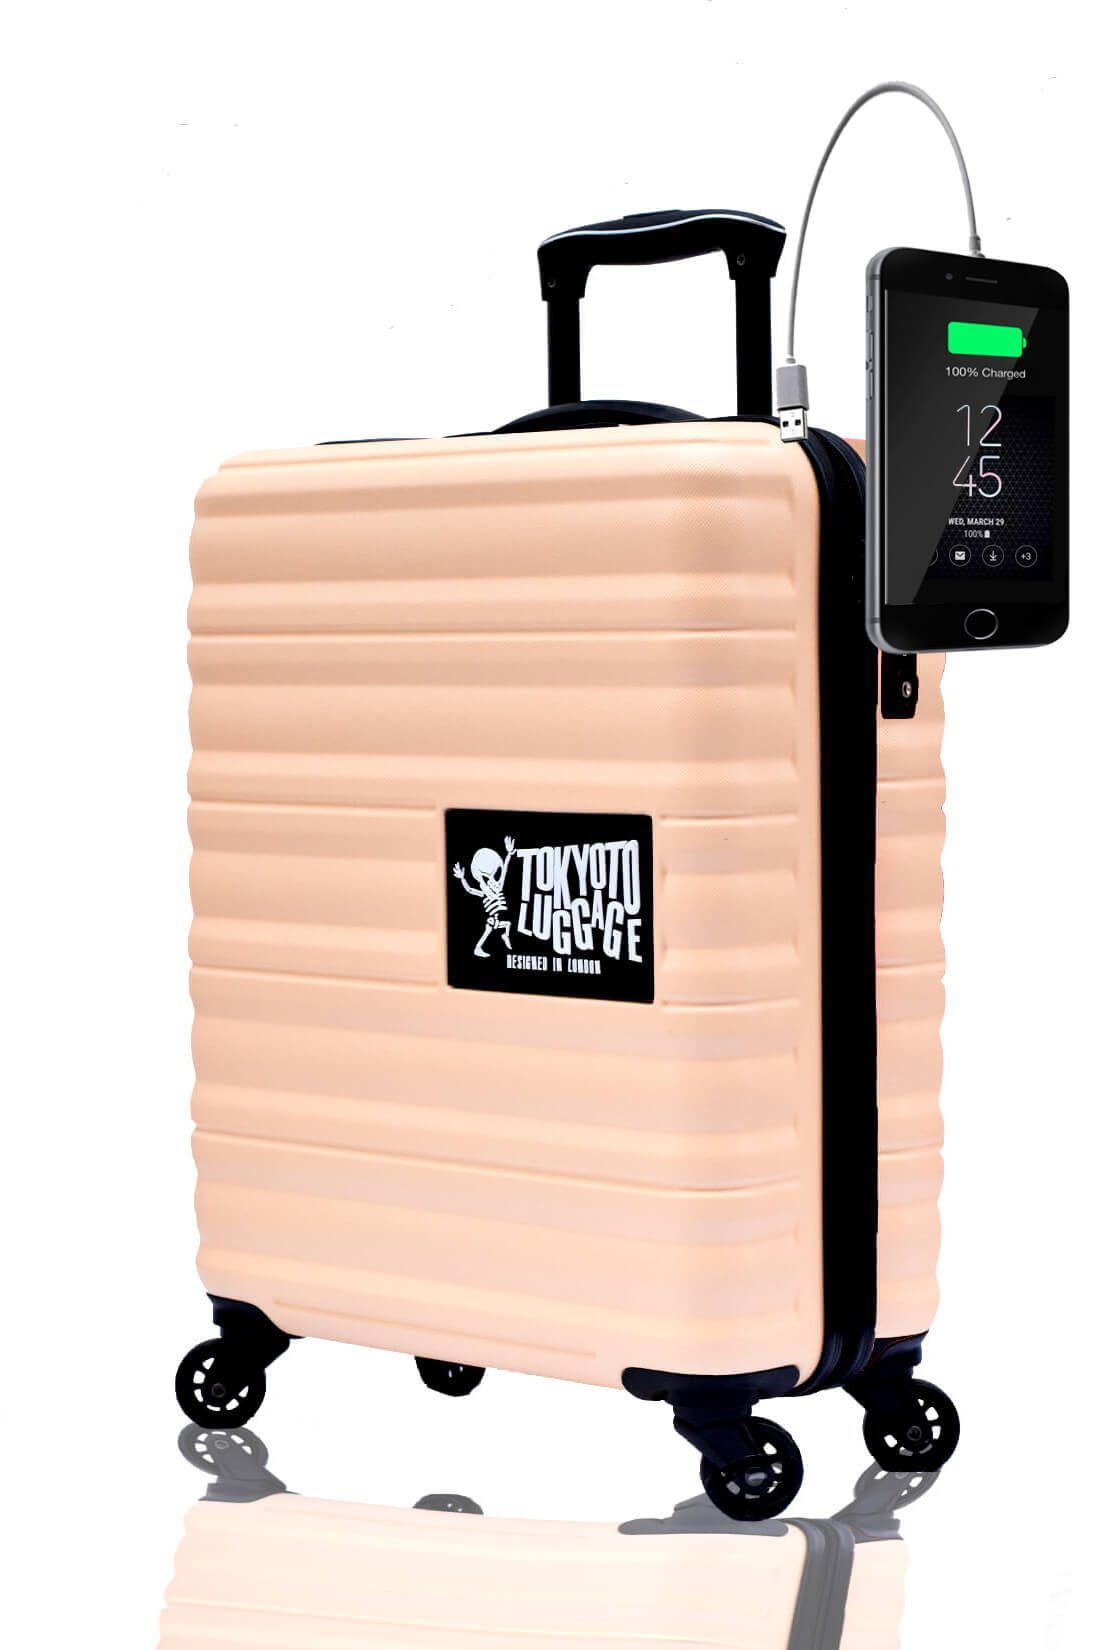 ABS Hand Trolley Cabin Luggage Suitcase Online Powerbank USB Charger TOKYOTO BEIGE CORAL